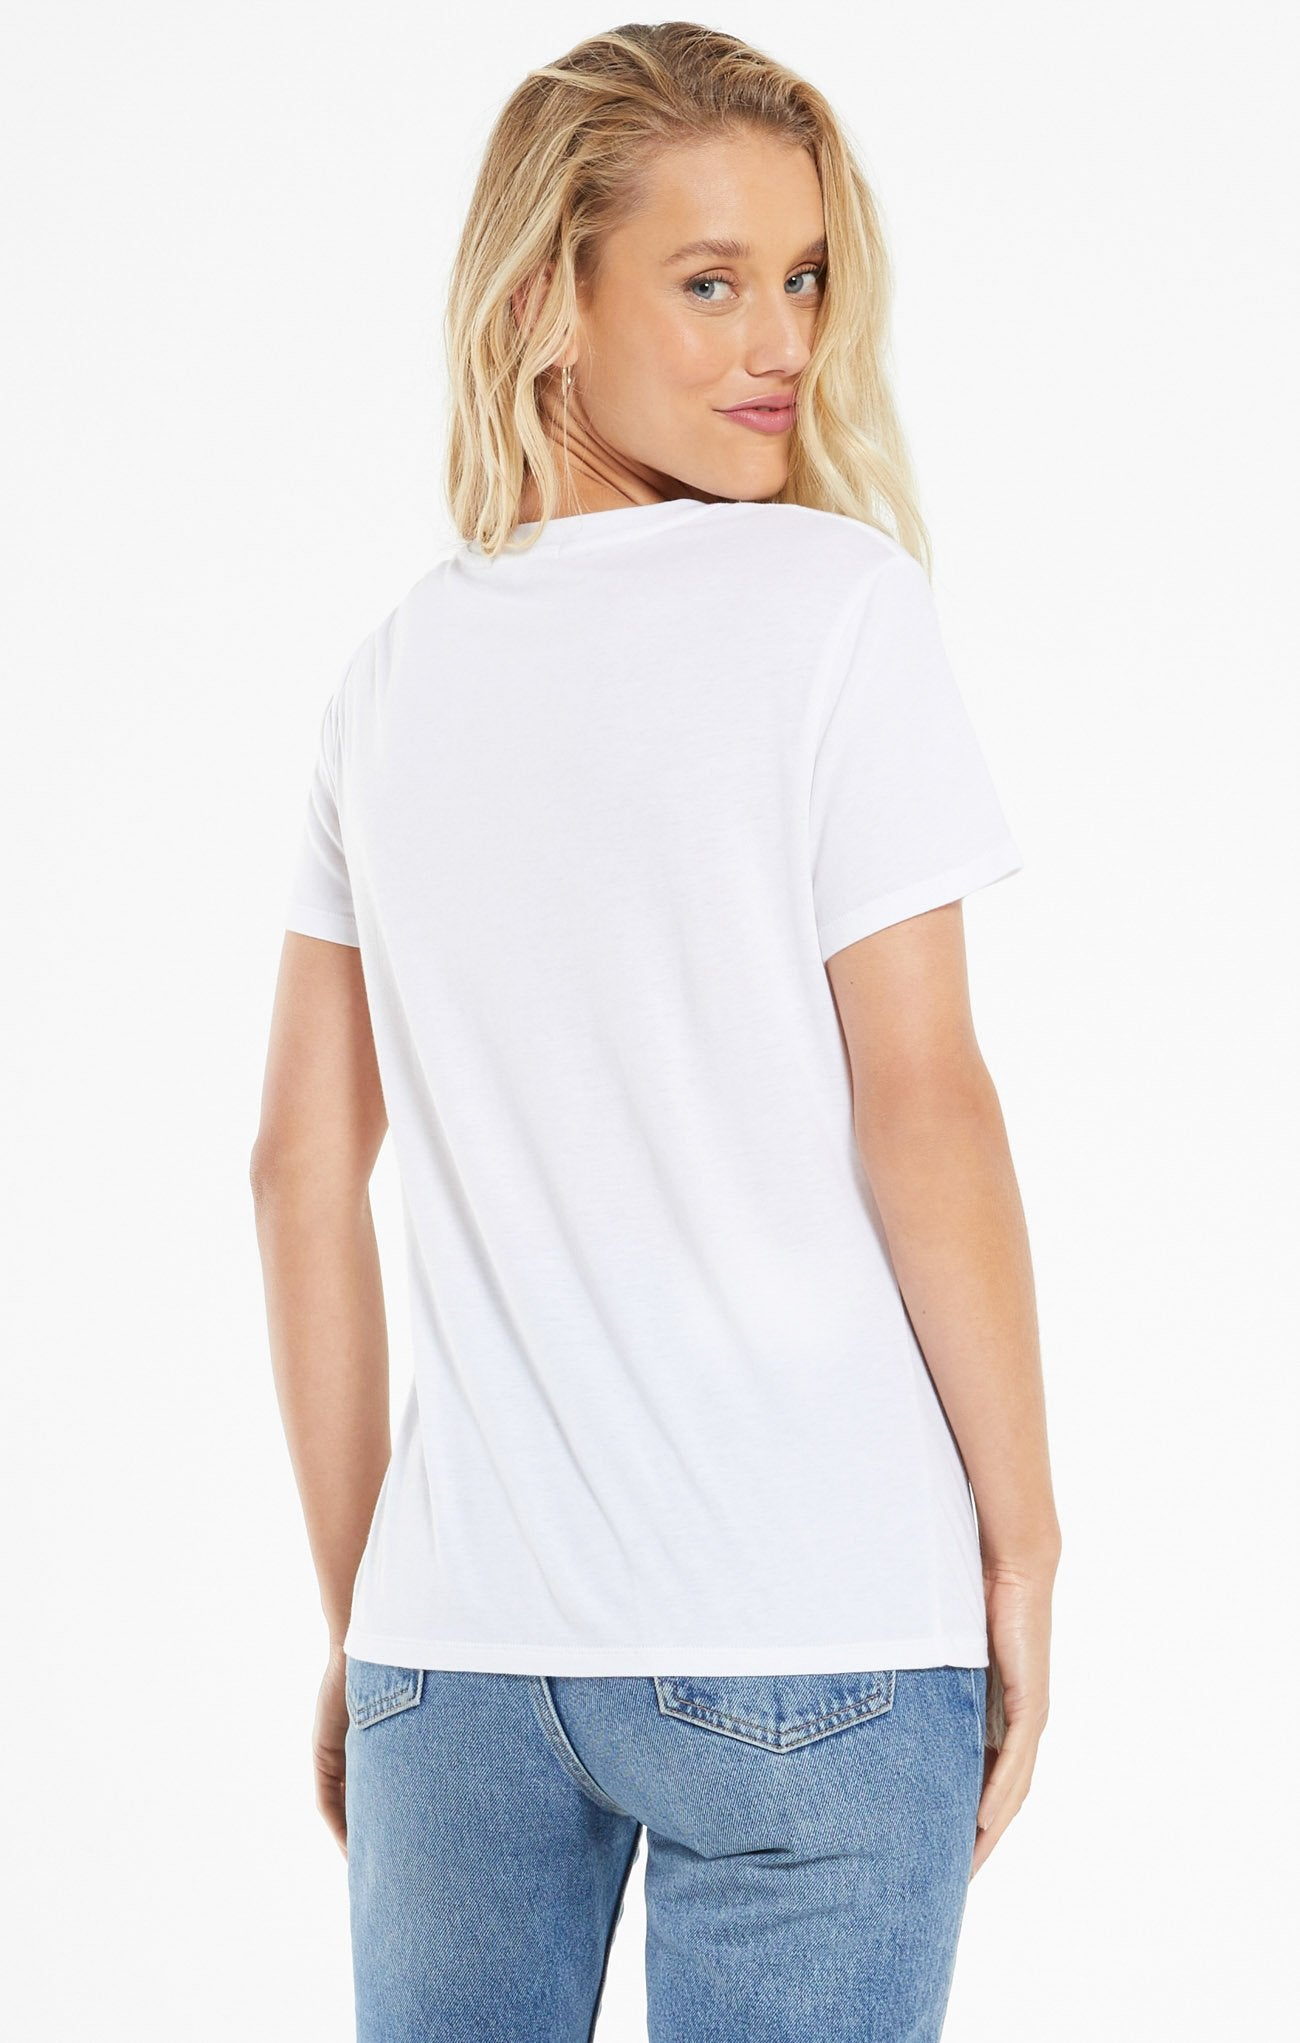 Z Supply Easy Modal Tee - White